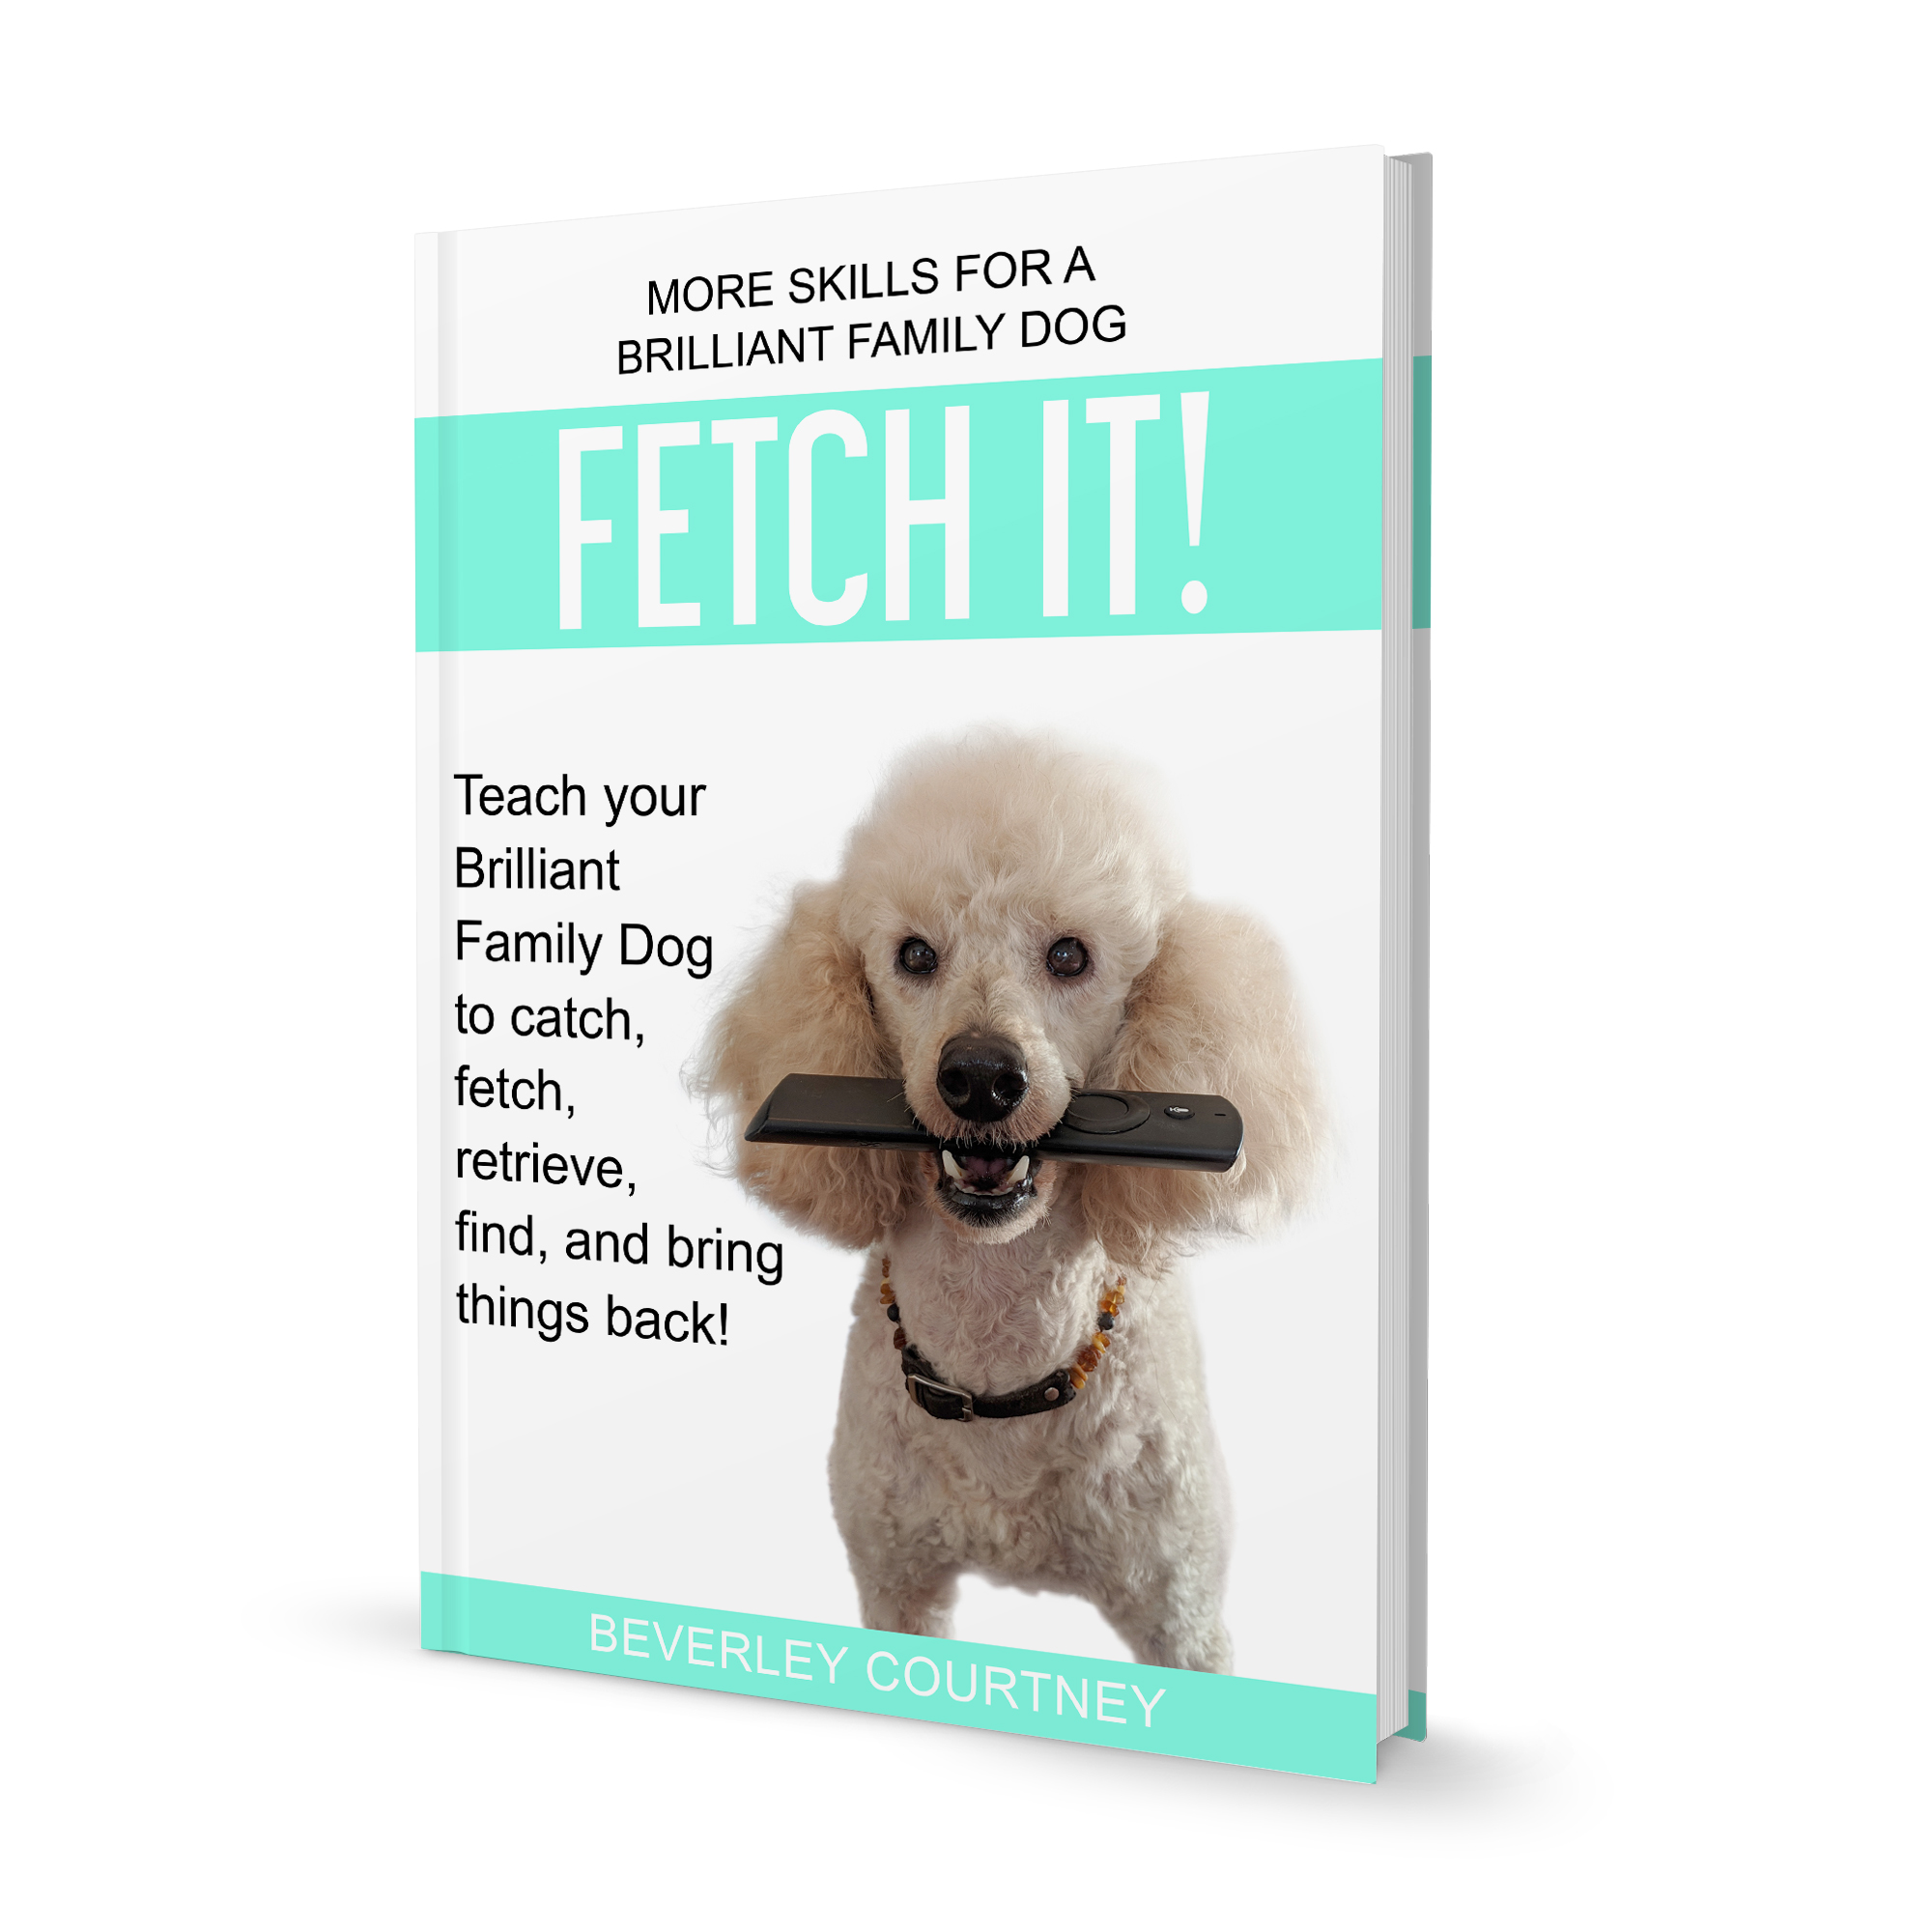 Want to turn your dog into a star retriever? Check Fetch it! Teach your Brilliant family Dog  to catch fetch, retrieve, find and bring things back! and enjoy a new relationship with your dog.